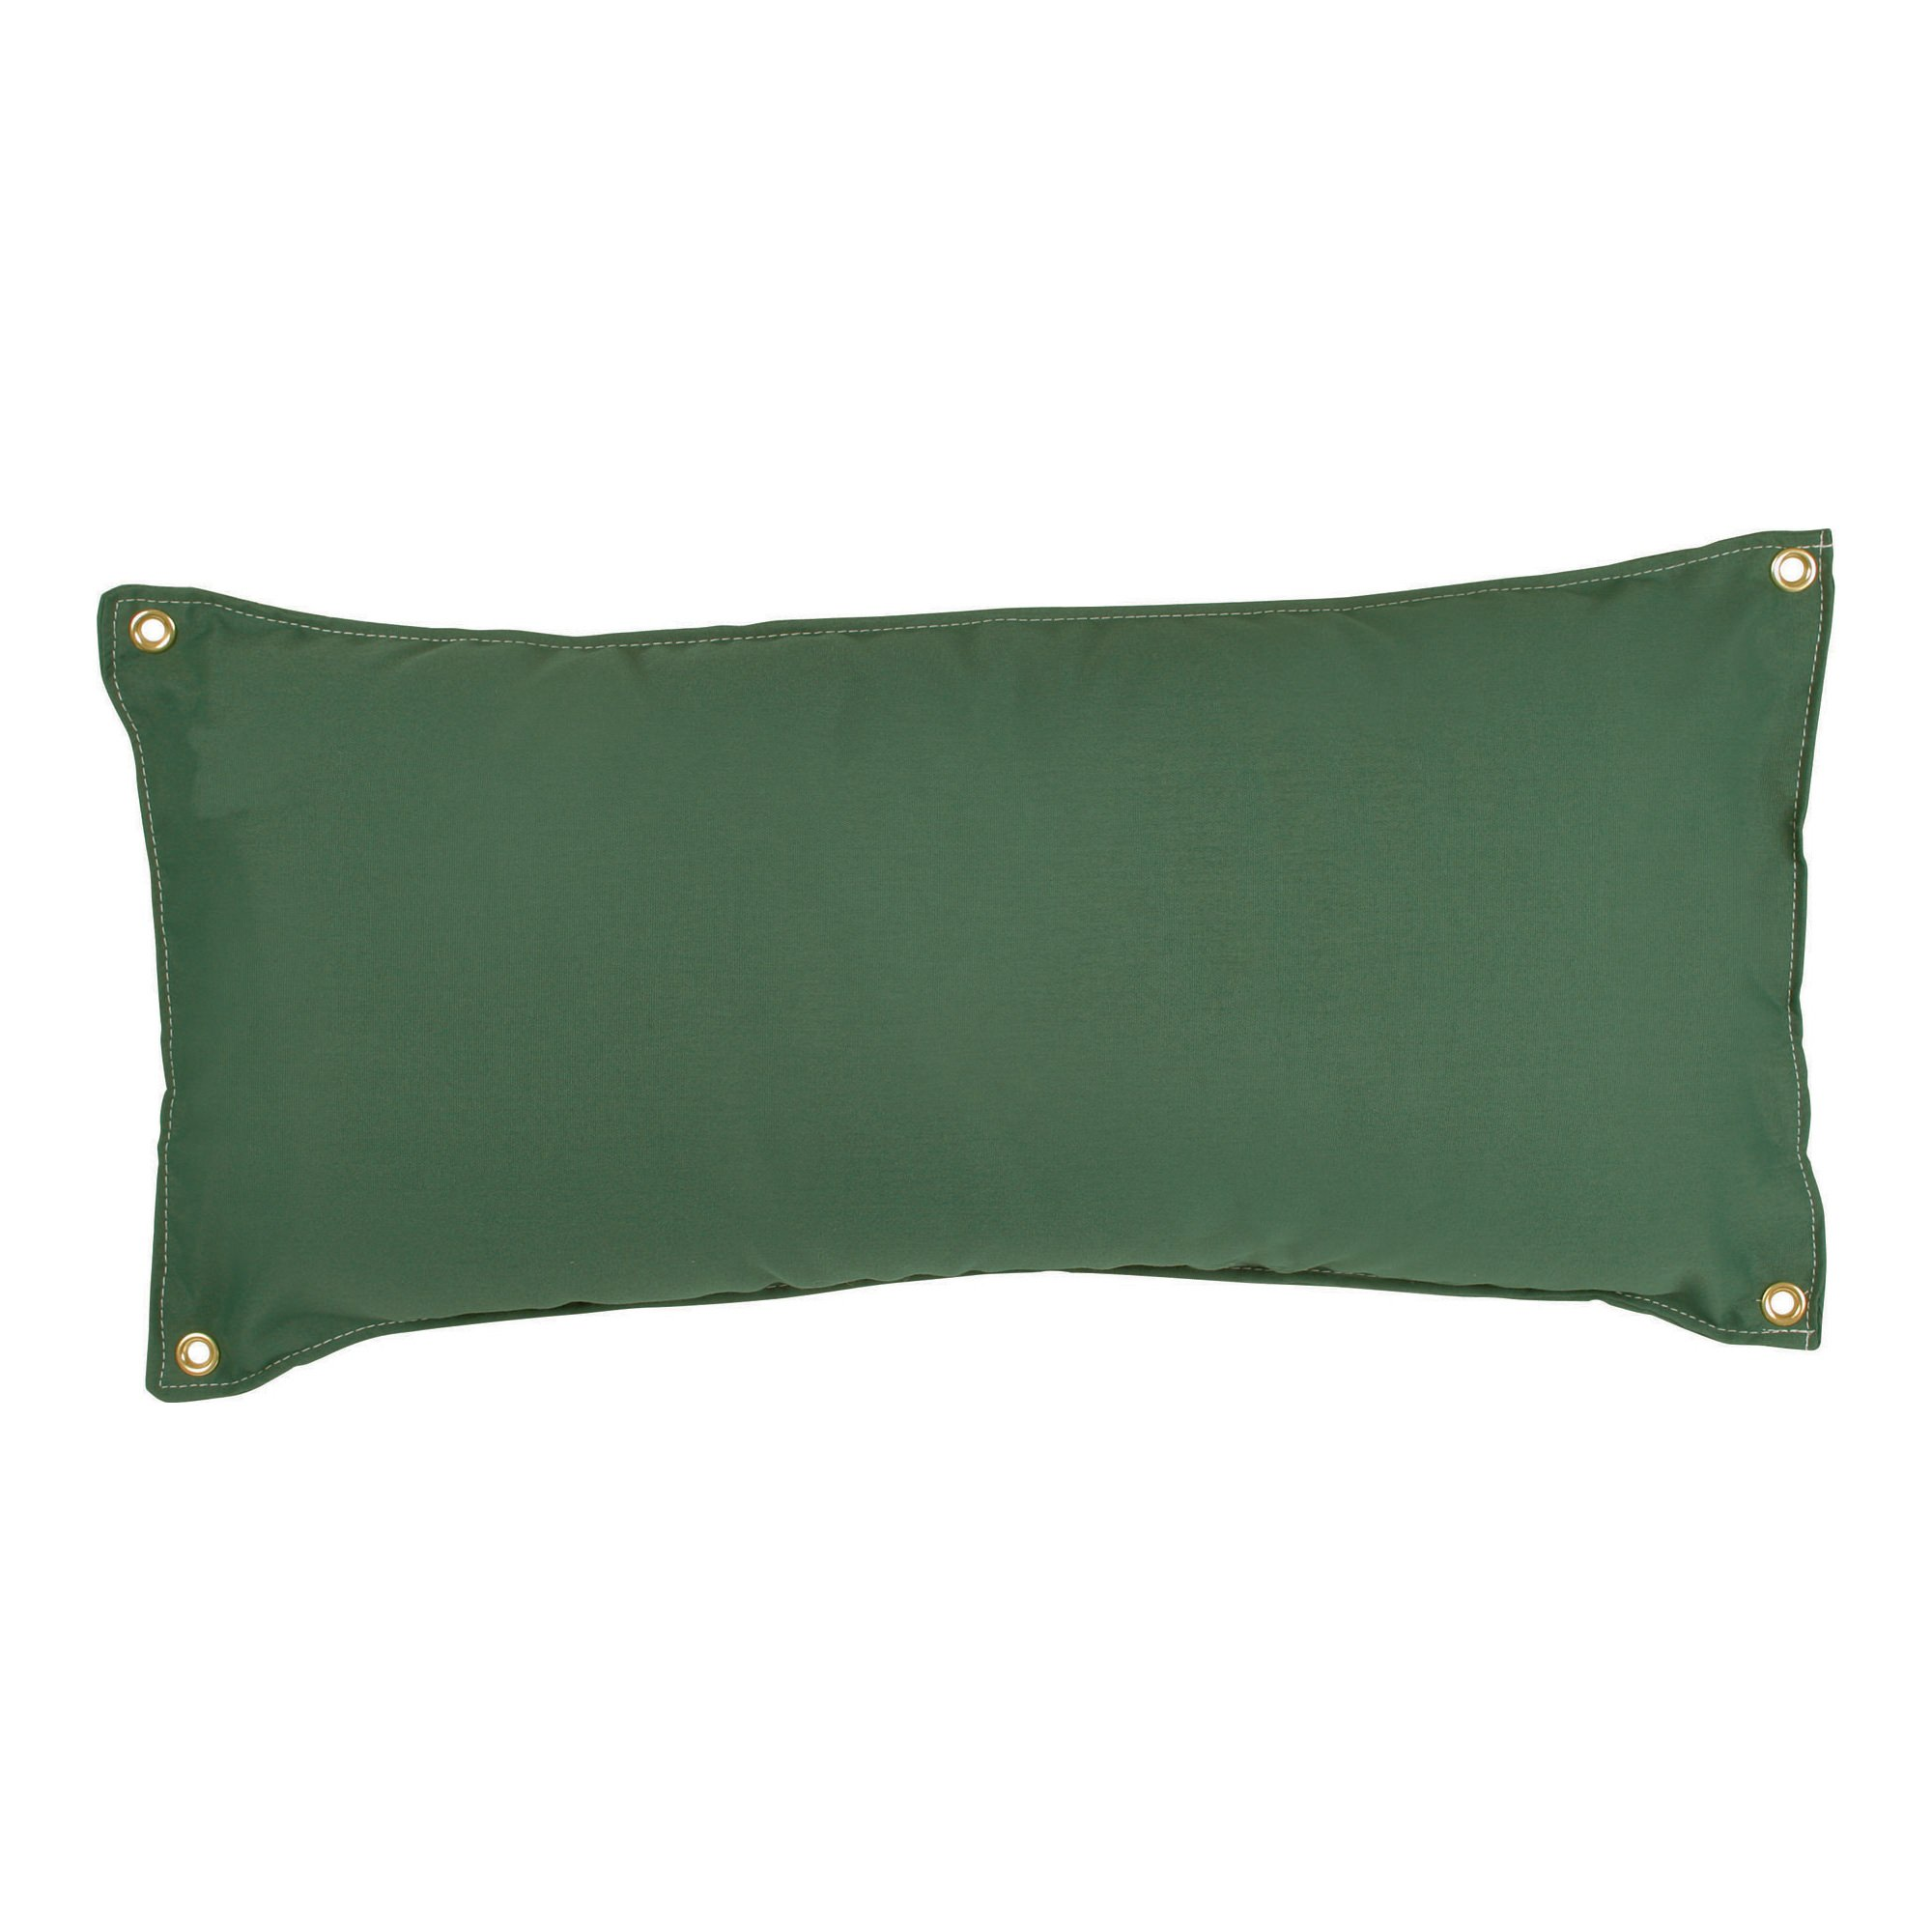 Green Hammock Pillow by Pawleys Island Hammocks